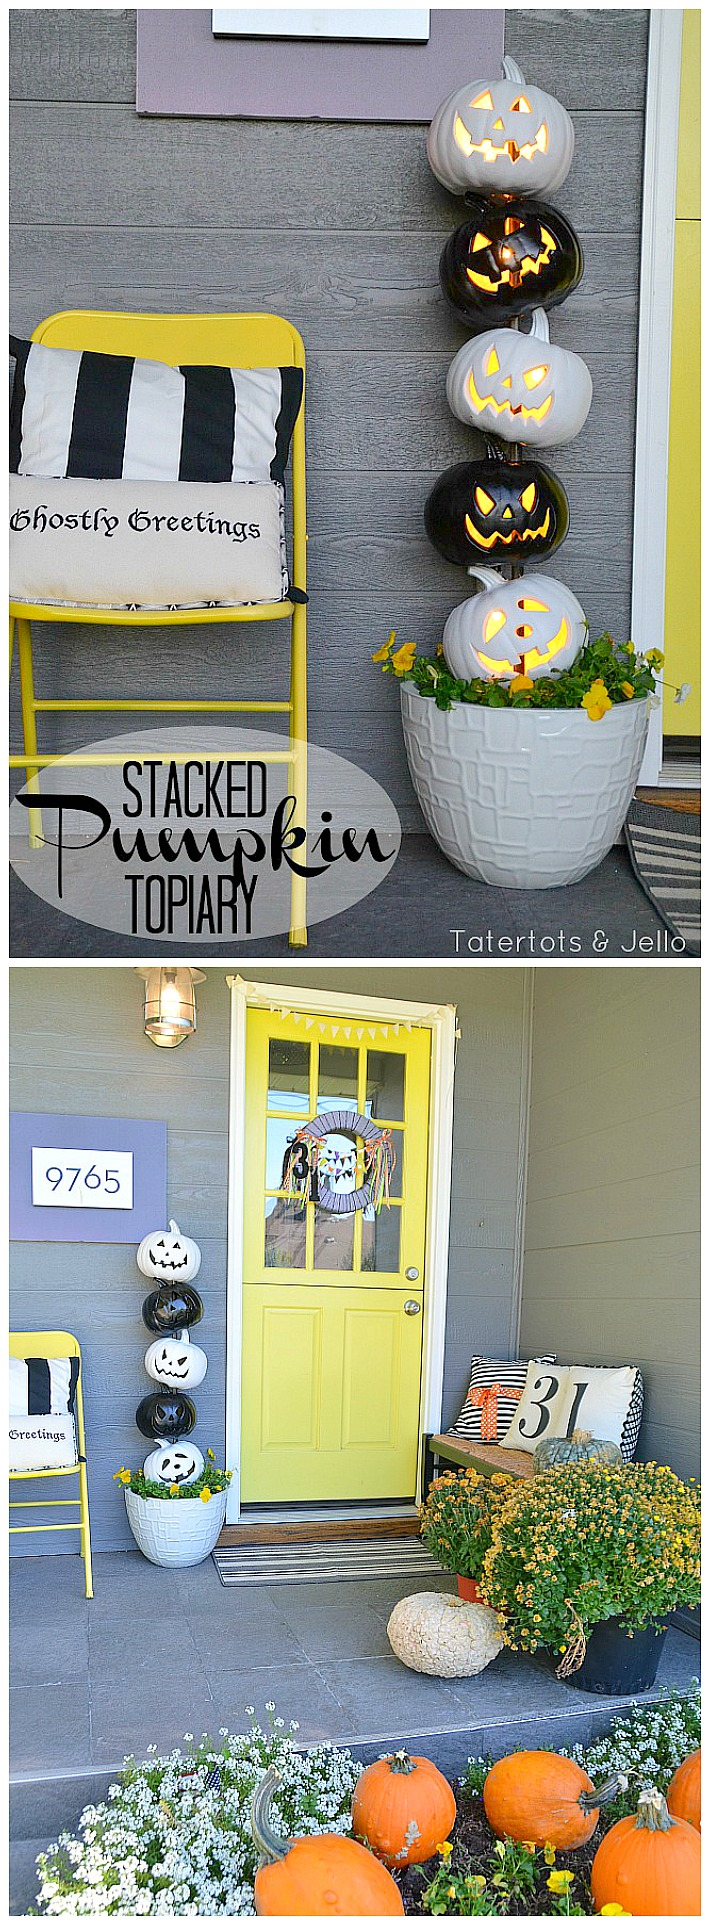 pray paint foam jack-o-lanterns and stack them to create a Halloween Topiary. Add lights and you have a super cute and festive way to welcome guests to your home!